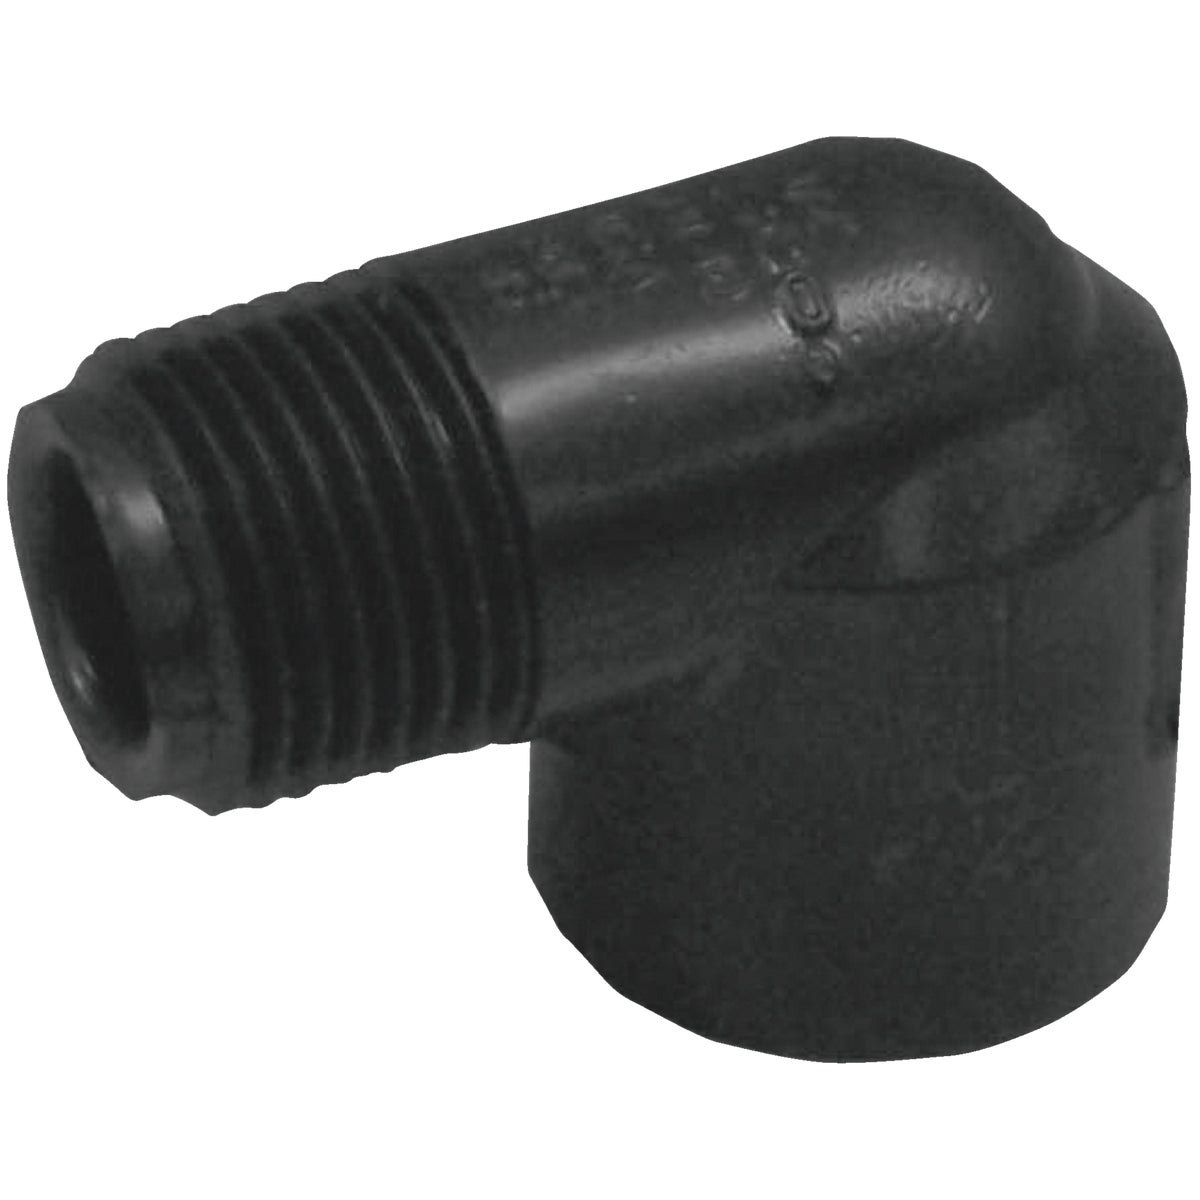 "1/2"" MXF 90D STR ELBOW - M32705 by Genova Inc"